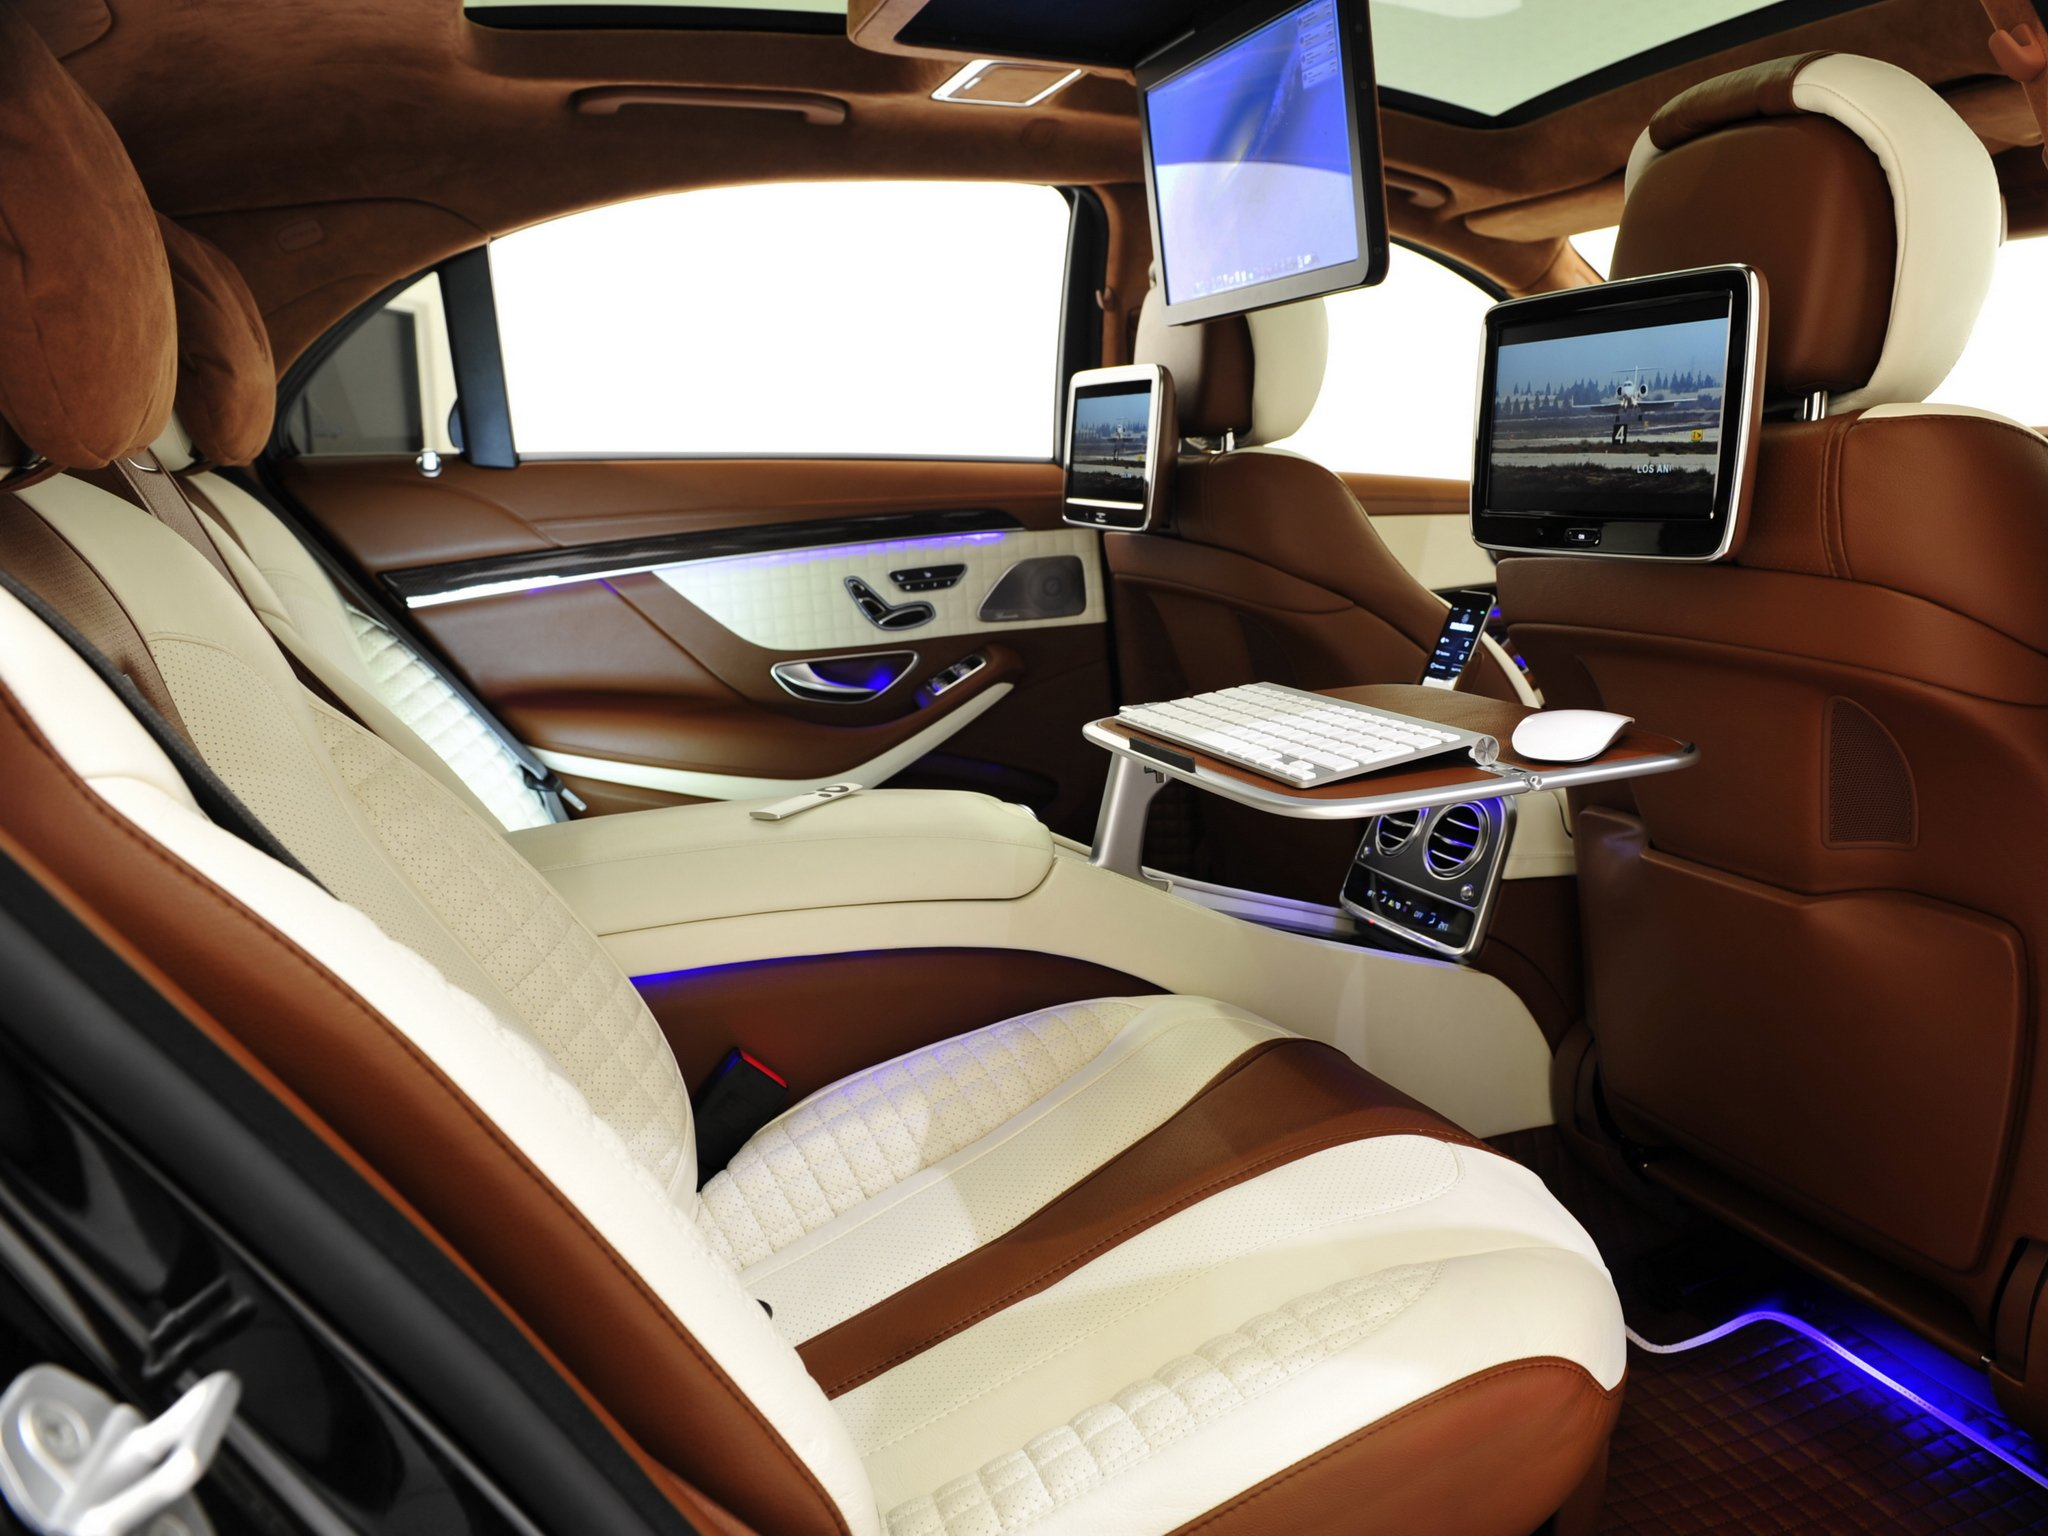 15 Passenger Hi Top Van furthermore Prijskaartjes Voor 20ers Van Mercedes E Klasse furthermore Driving Me Crazy 2015 Lexus 9000a Es350 And 2015 Hyundai Sonata Eco Hybrid Alike Hmmmm We Investigate By John And Laurie Wiles in addition T3 12 8 further Car Reviews M136. on 2014 mercedes e350 luxury interior